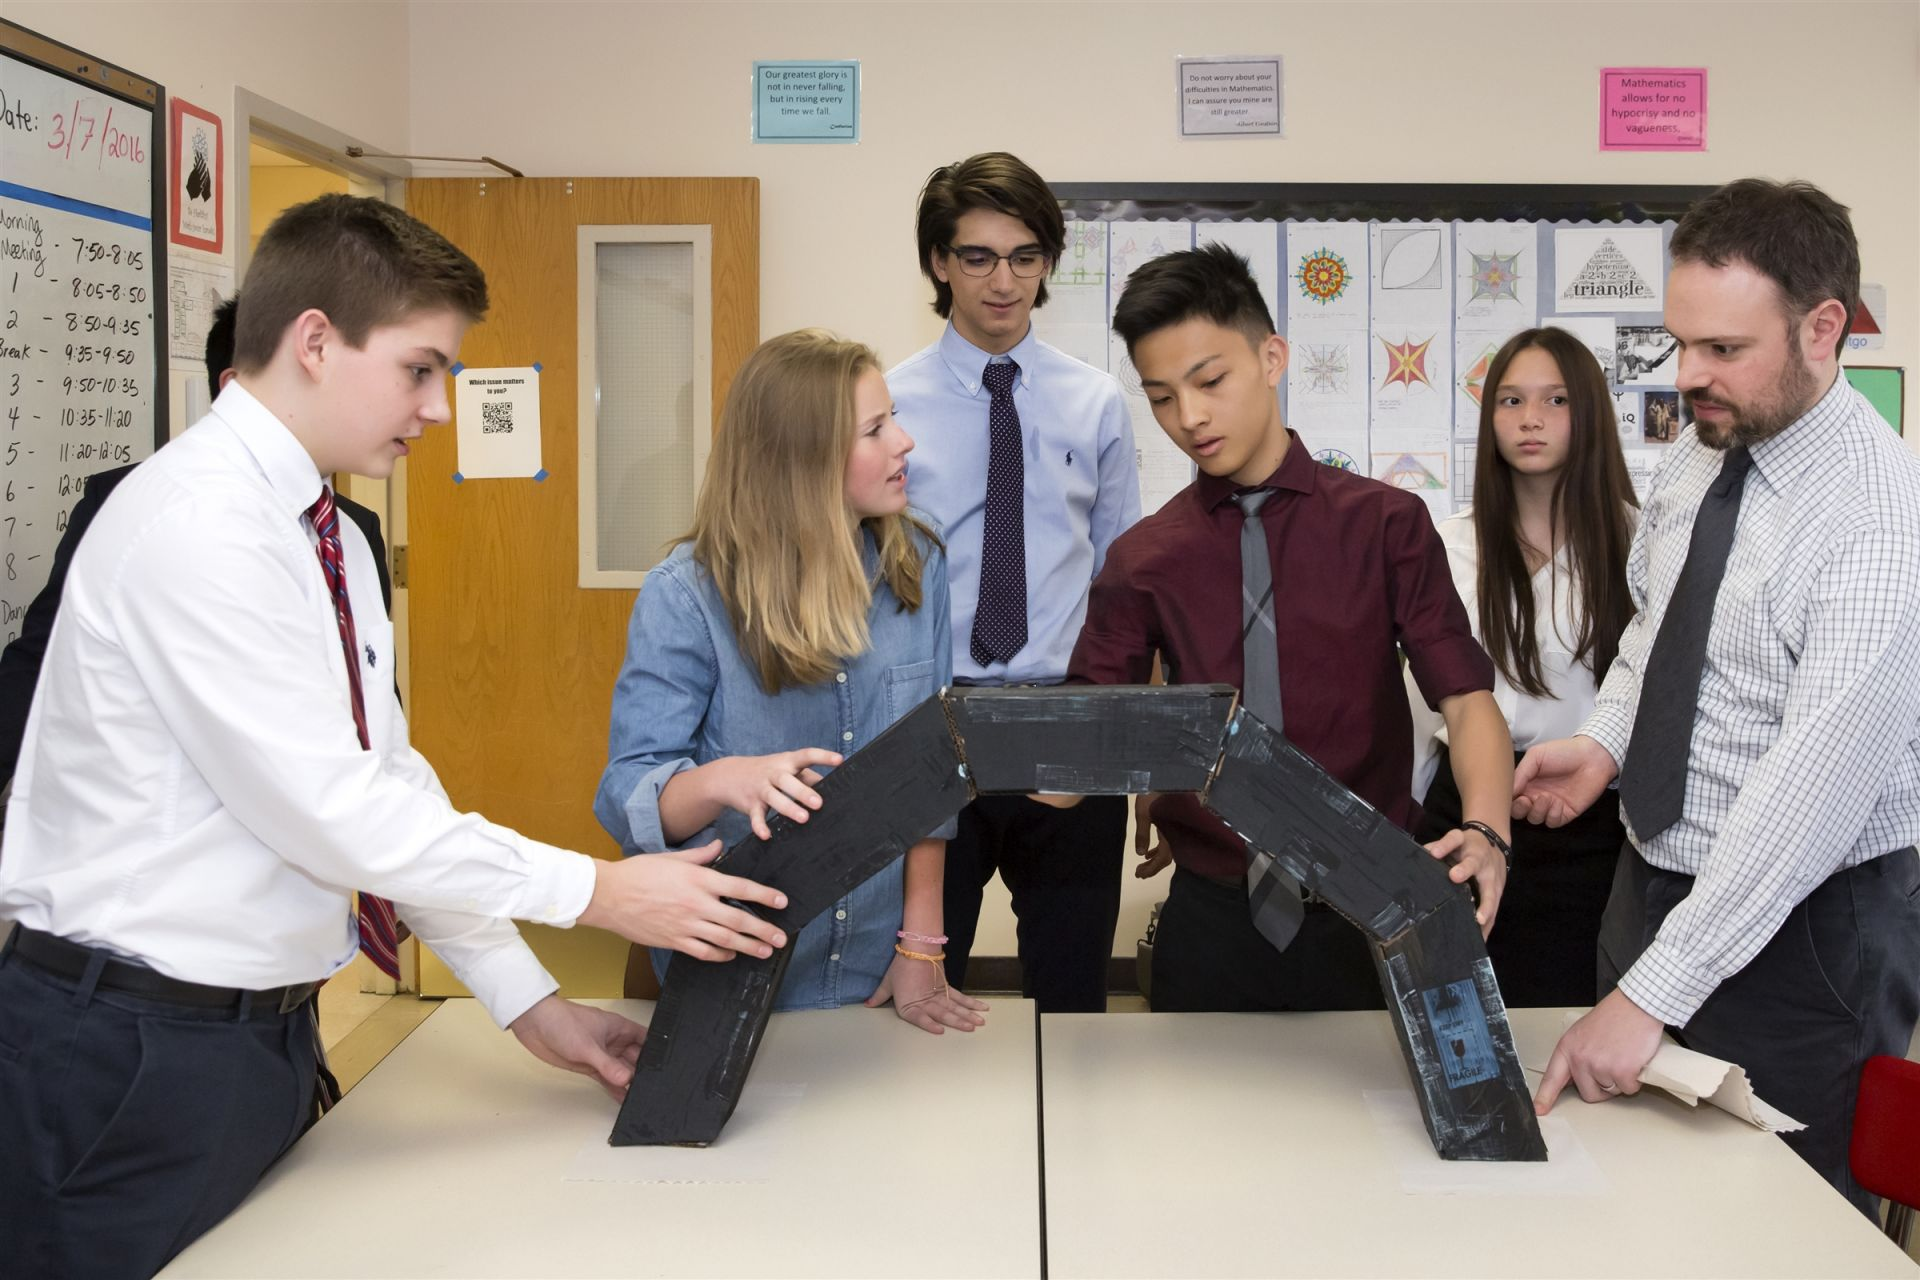 The Upper School math curriculum emphasizes the development of mathematical reasoning and the mastery of skills. Hands-on projects make abstract concepts come alive, as with this project, where geometry students applied the principles of arcs and angles to design and build a working arch.